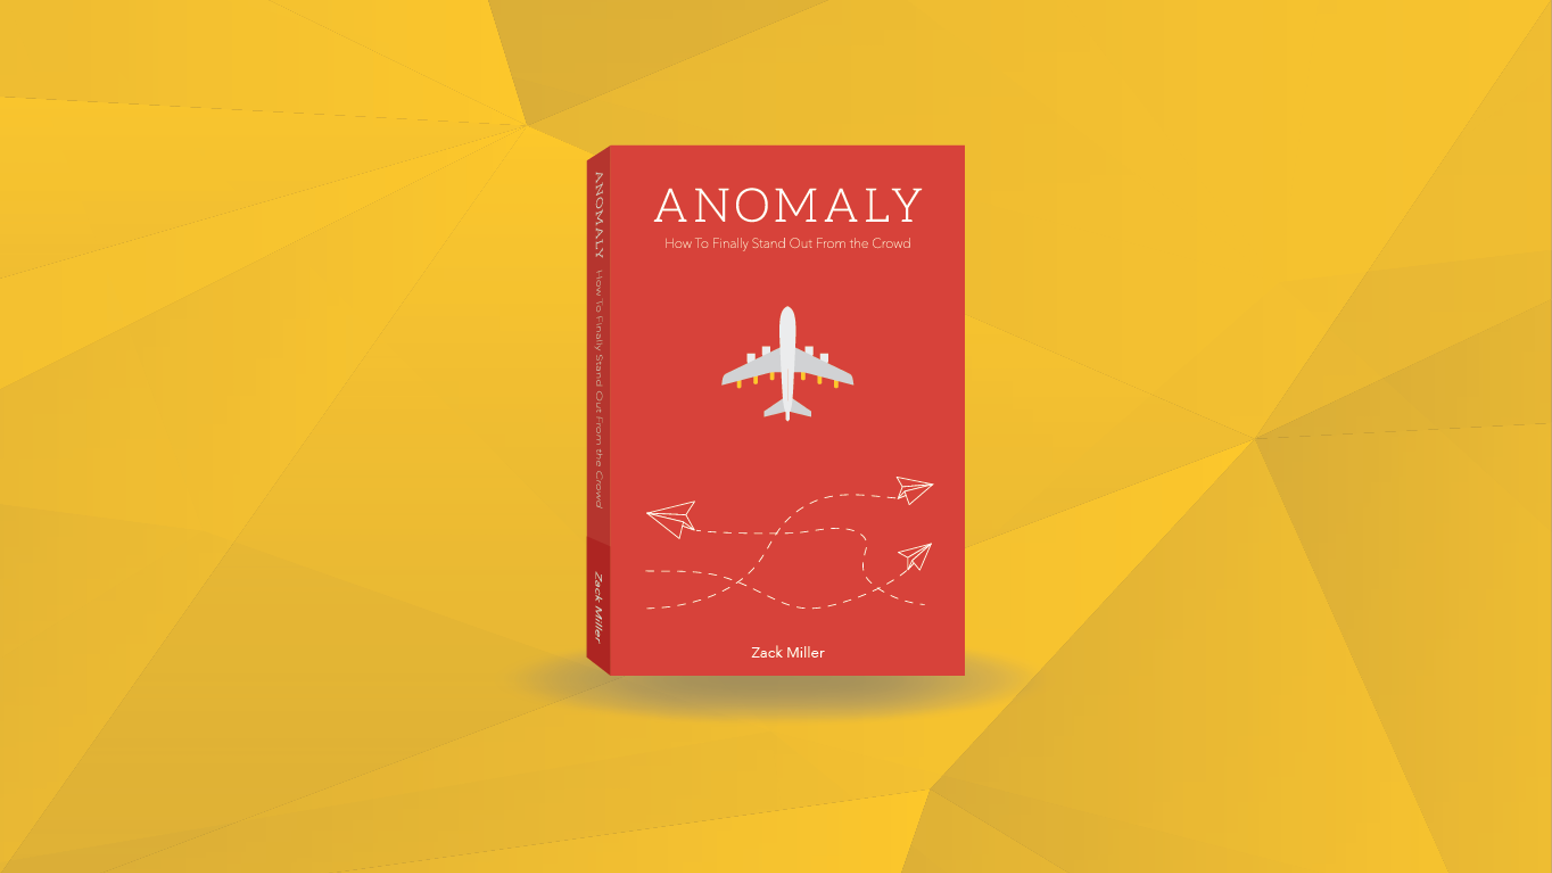 A book that provides proven methods and techniques to turn heads, be memorable, and become the anomaly!